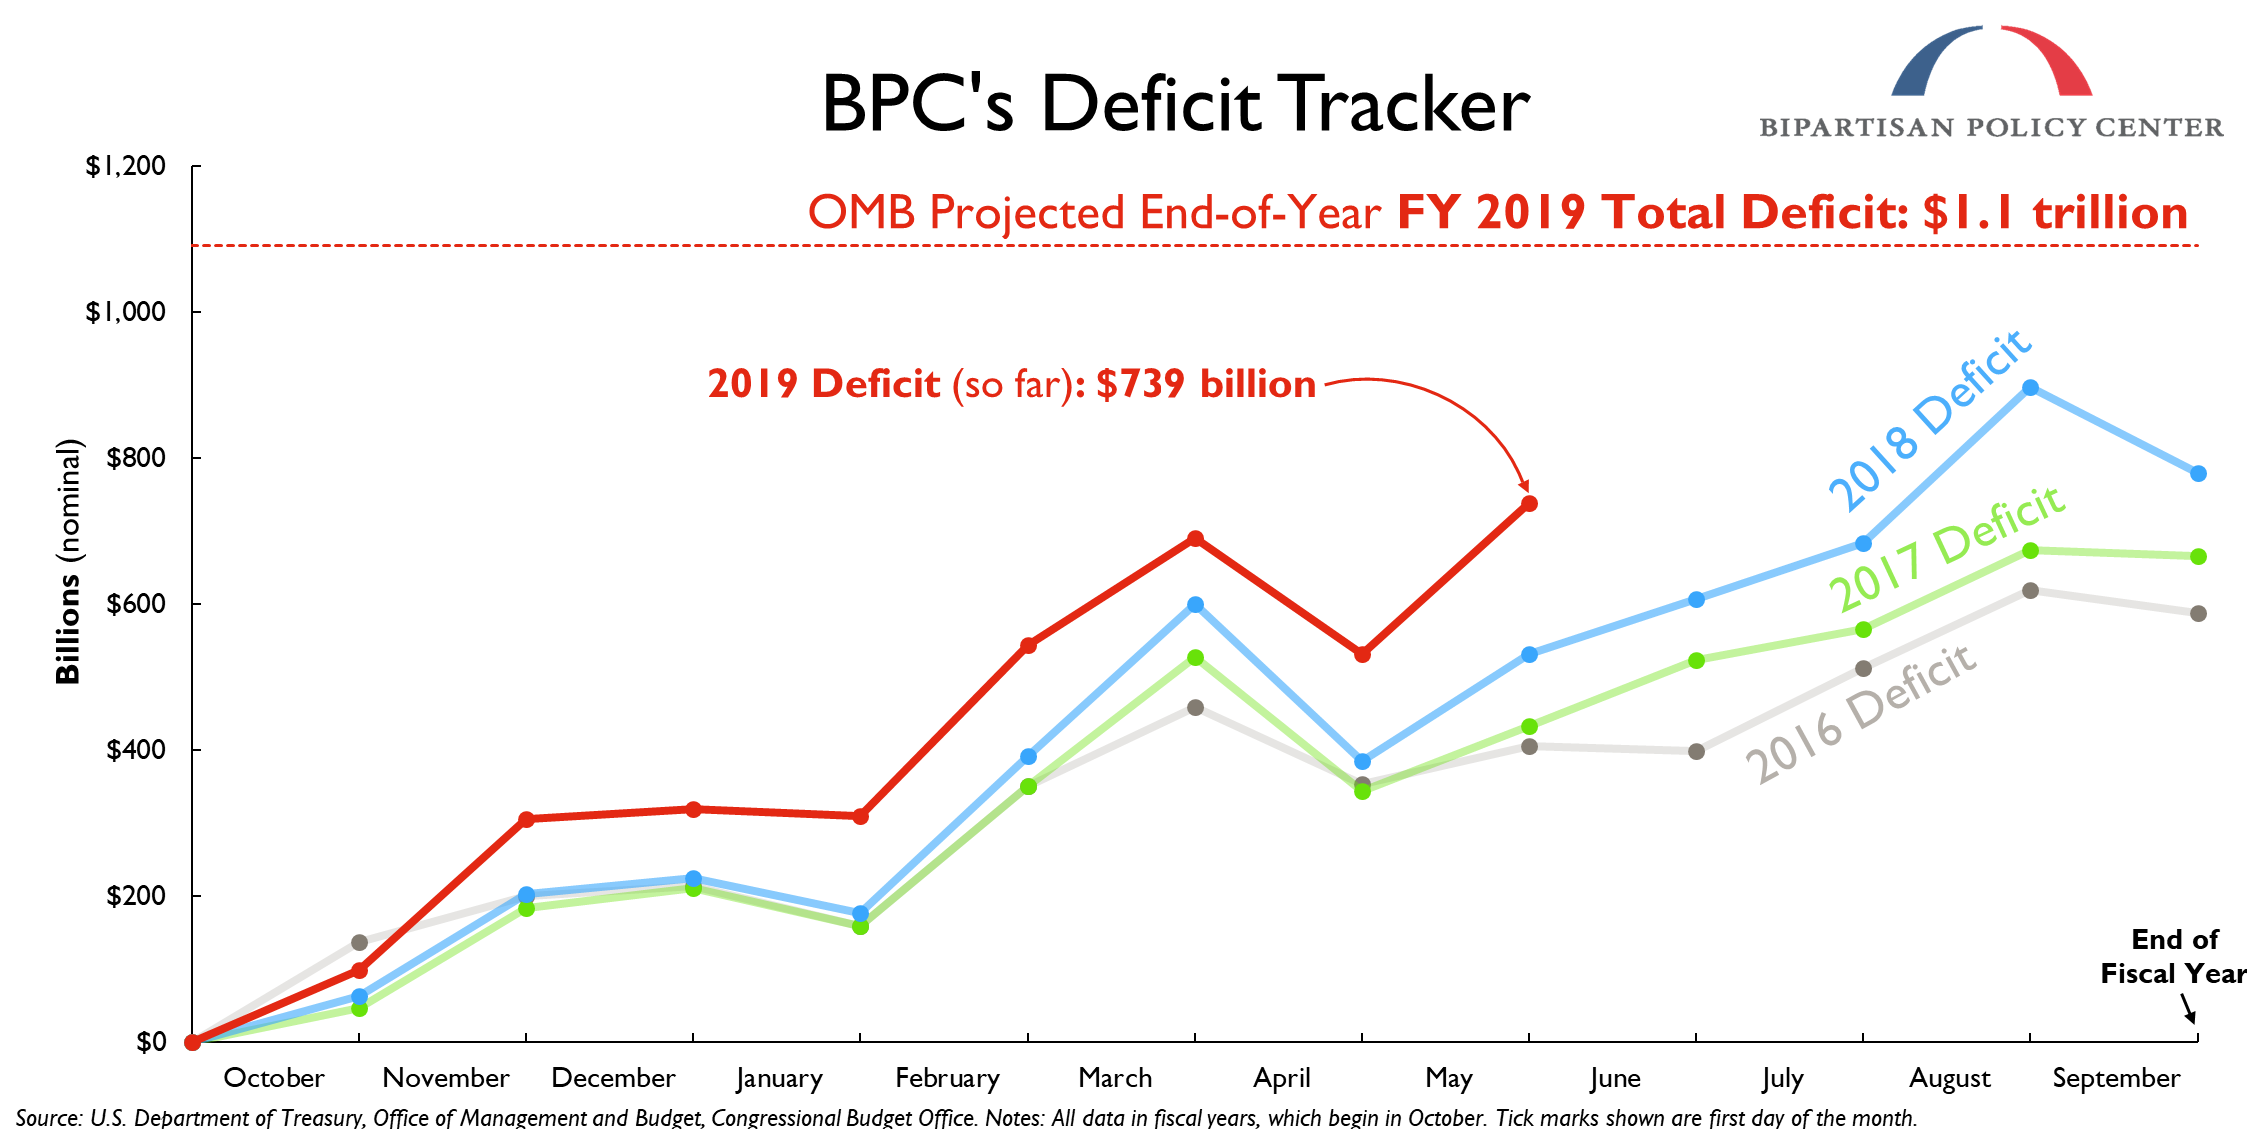 https://bipartisanpolicy.org/wp-content/uploads/2019/03/Deficit-Tracker-Update-6.10.2019.png